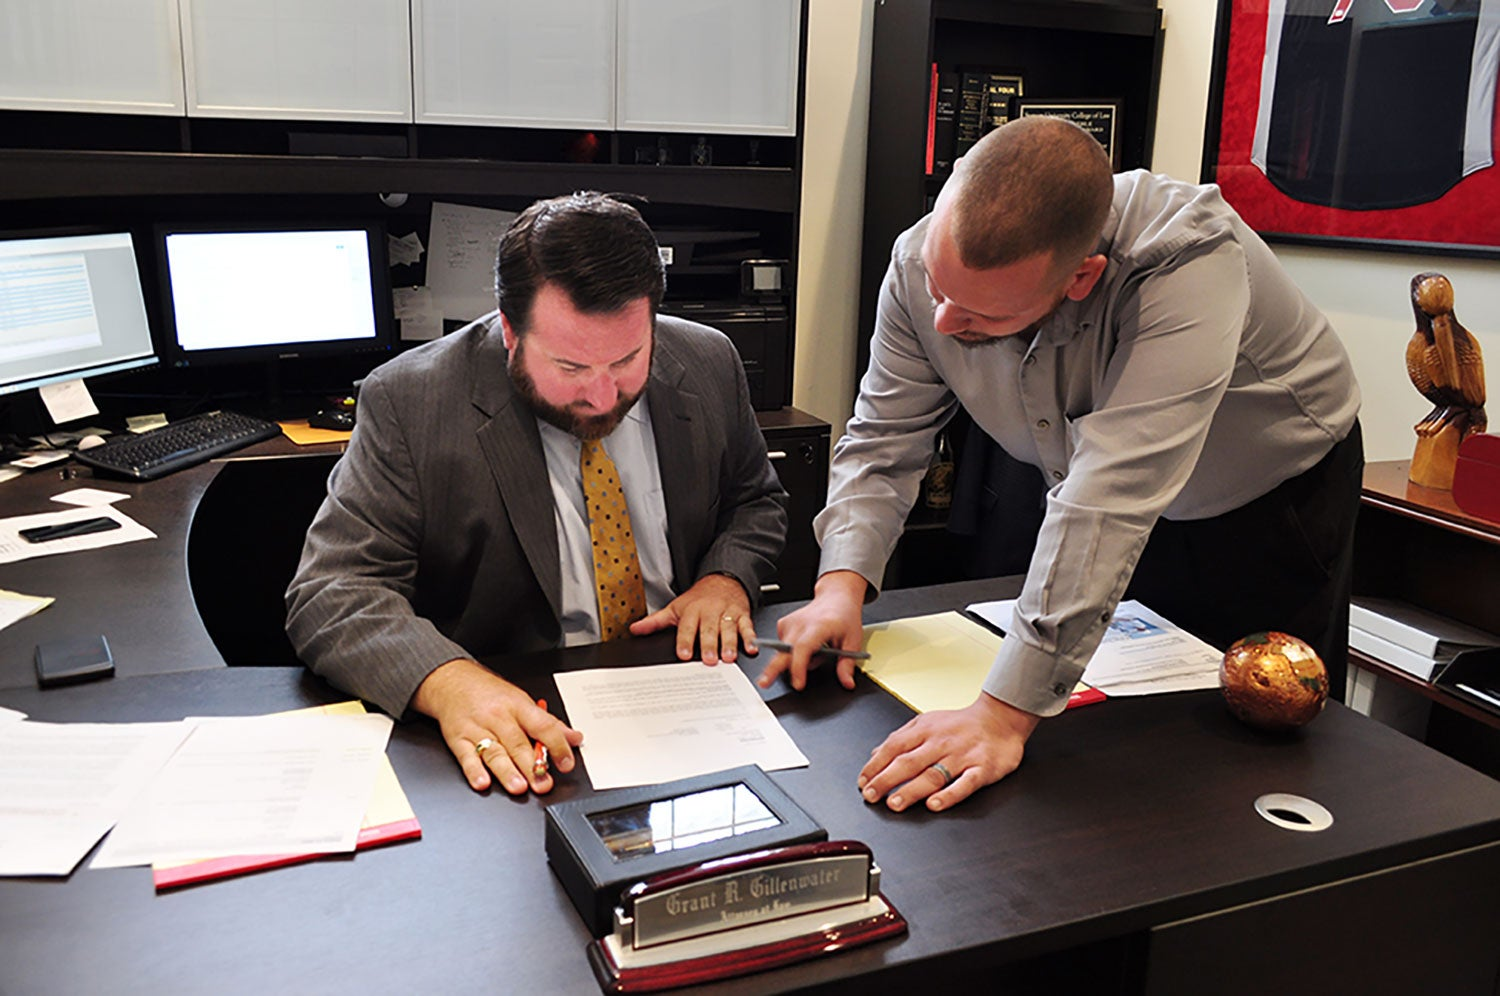 Personal Injury Lawyers in Melbourne, Florida (FL